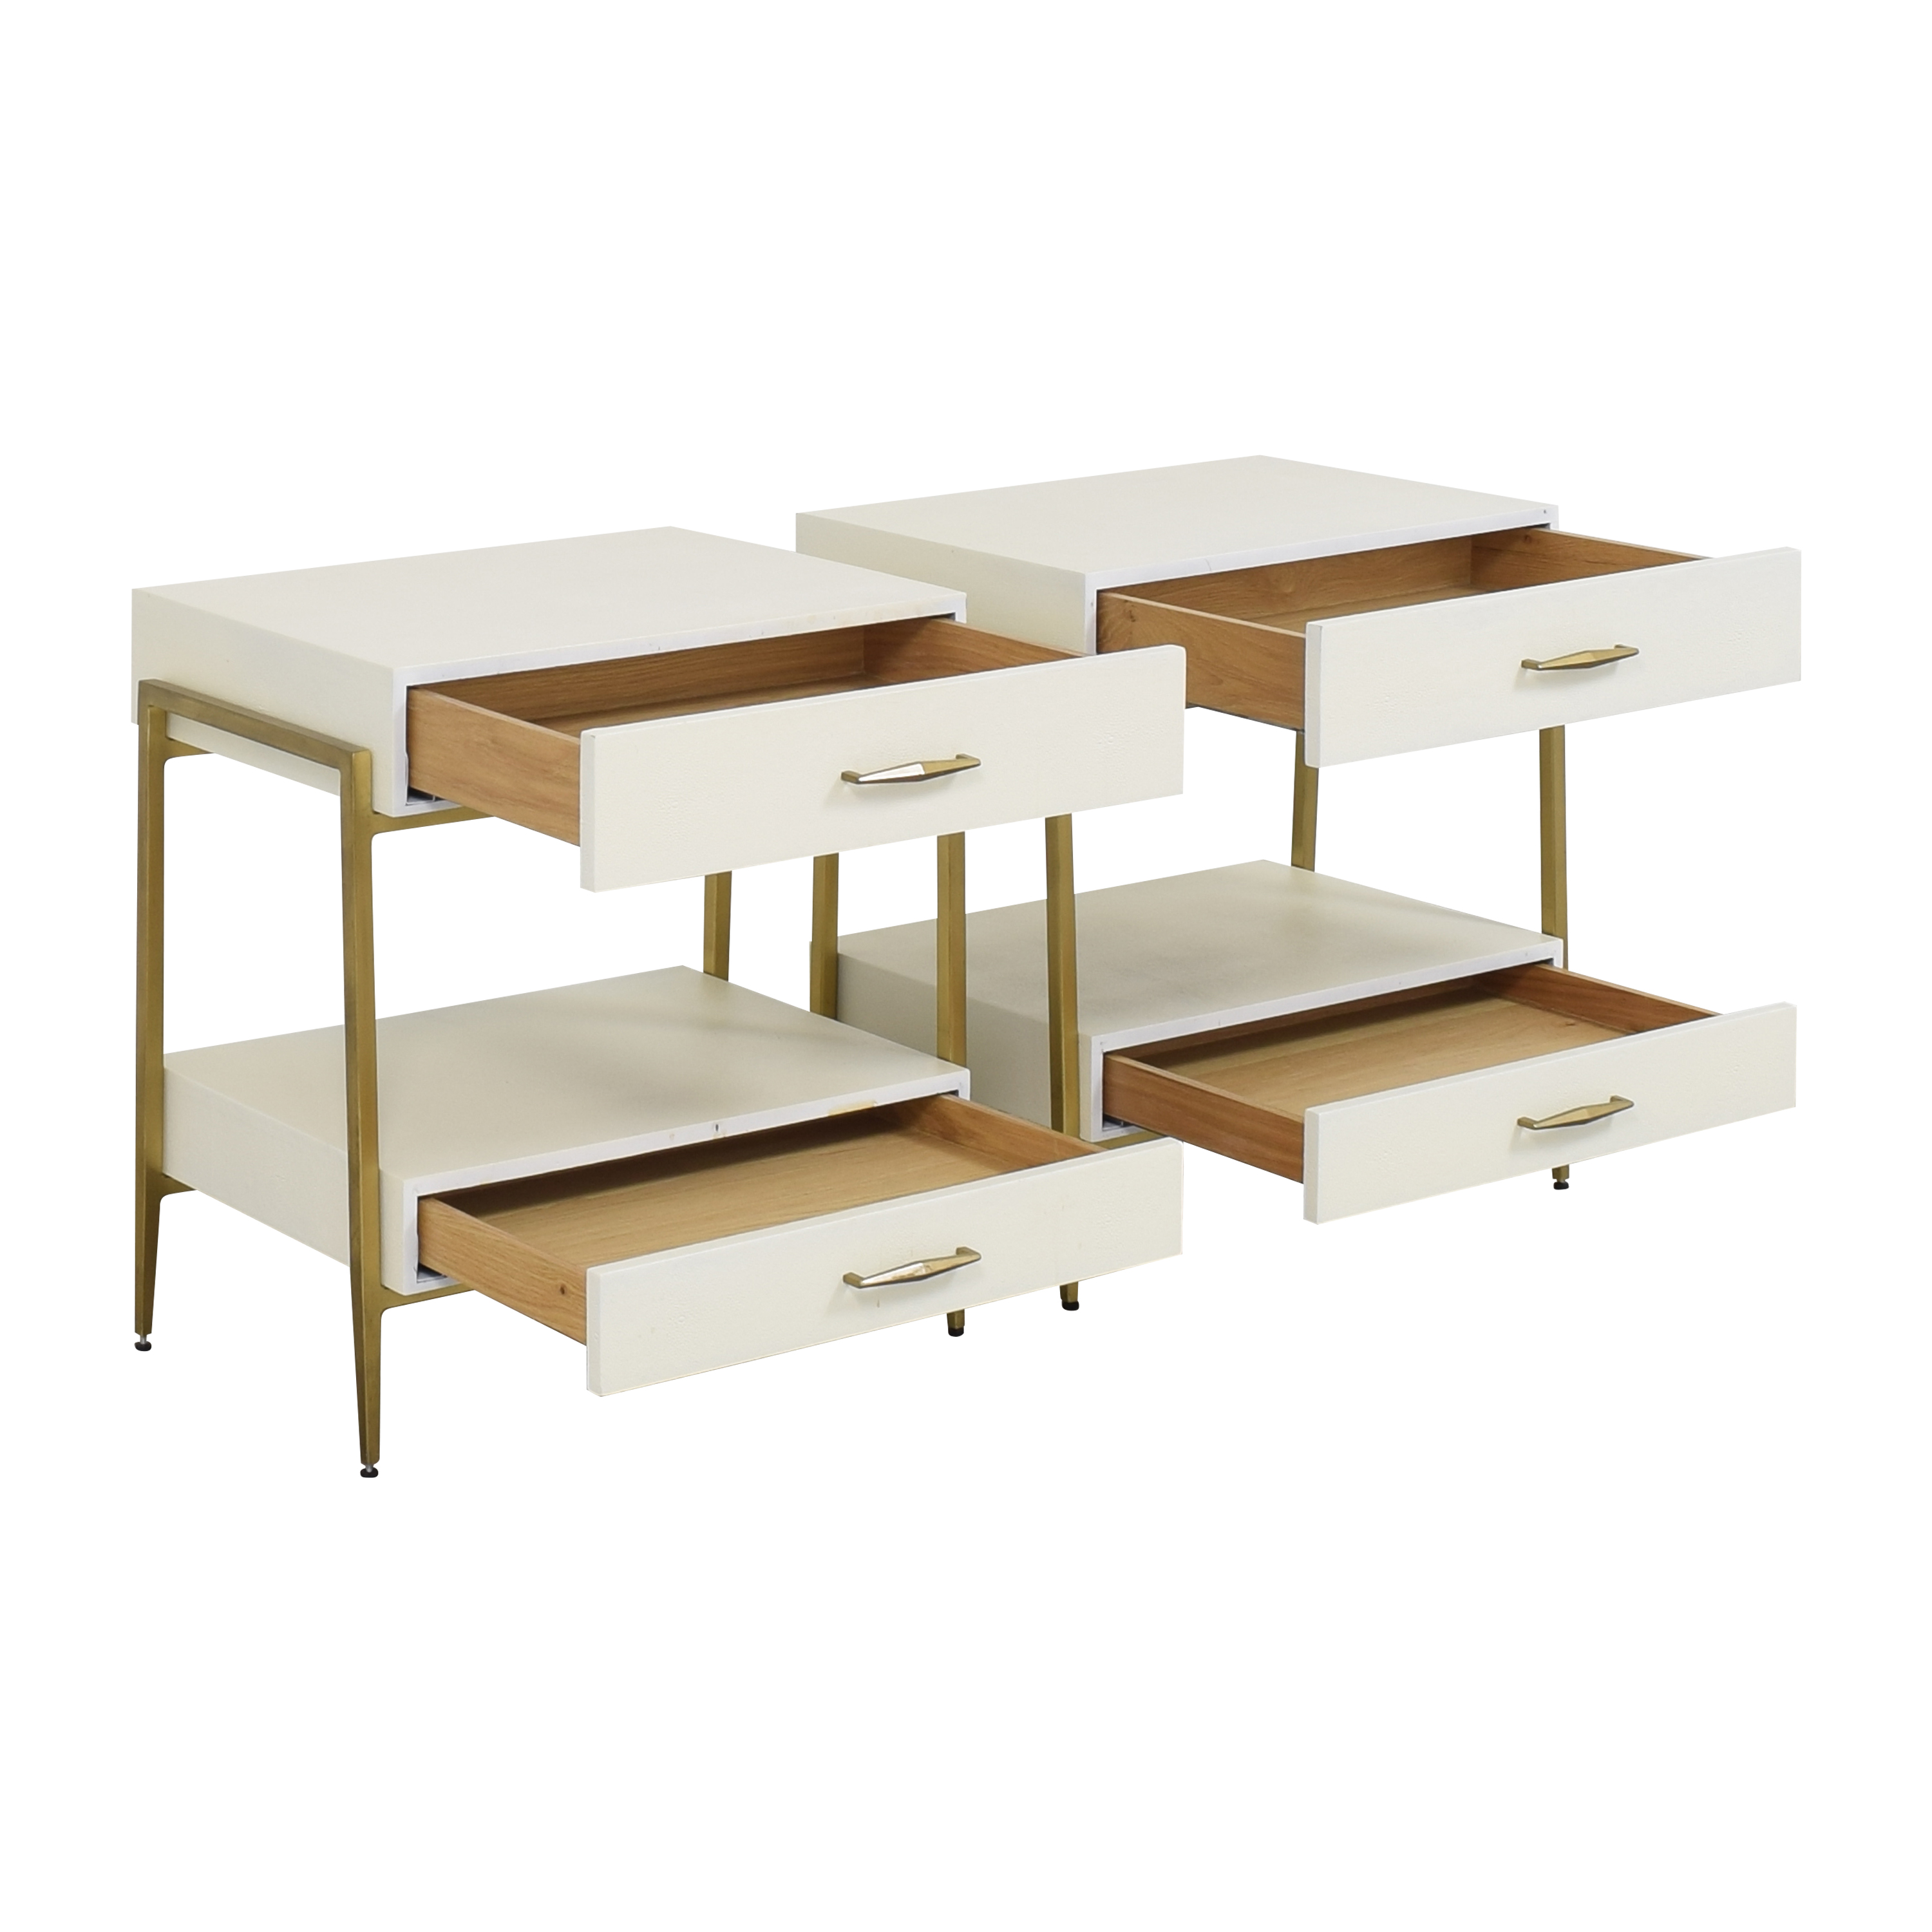 Interlude Home Allegra Nightstands / End Tables